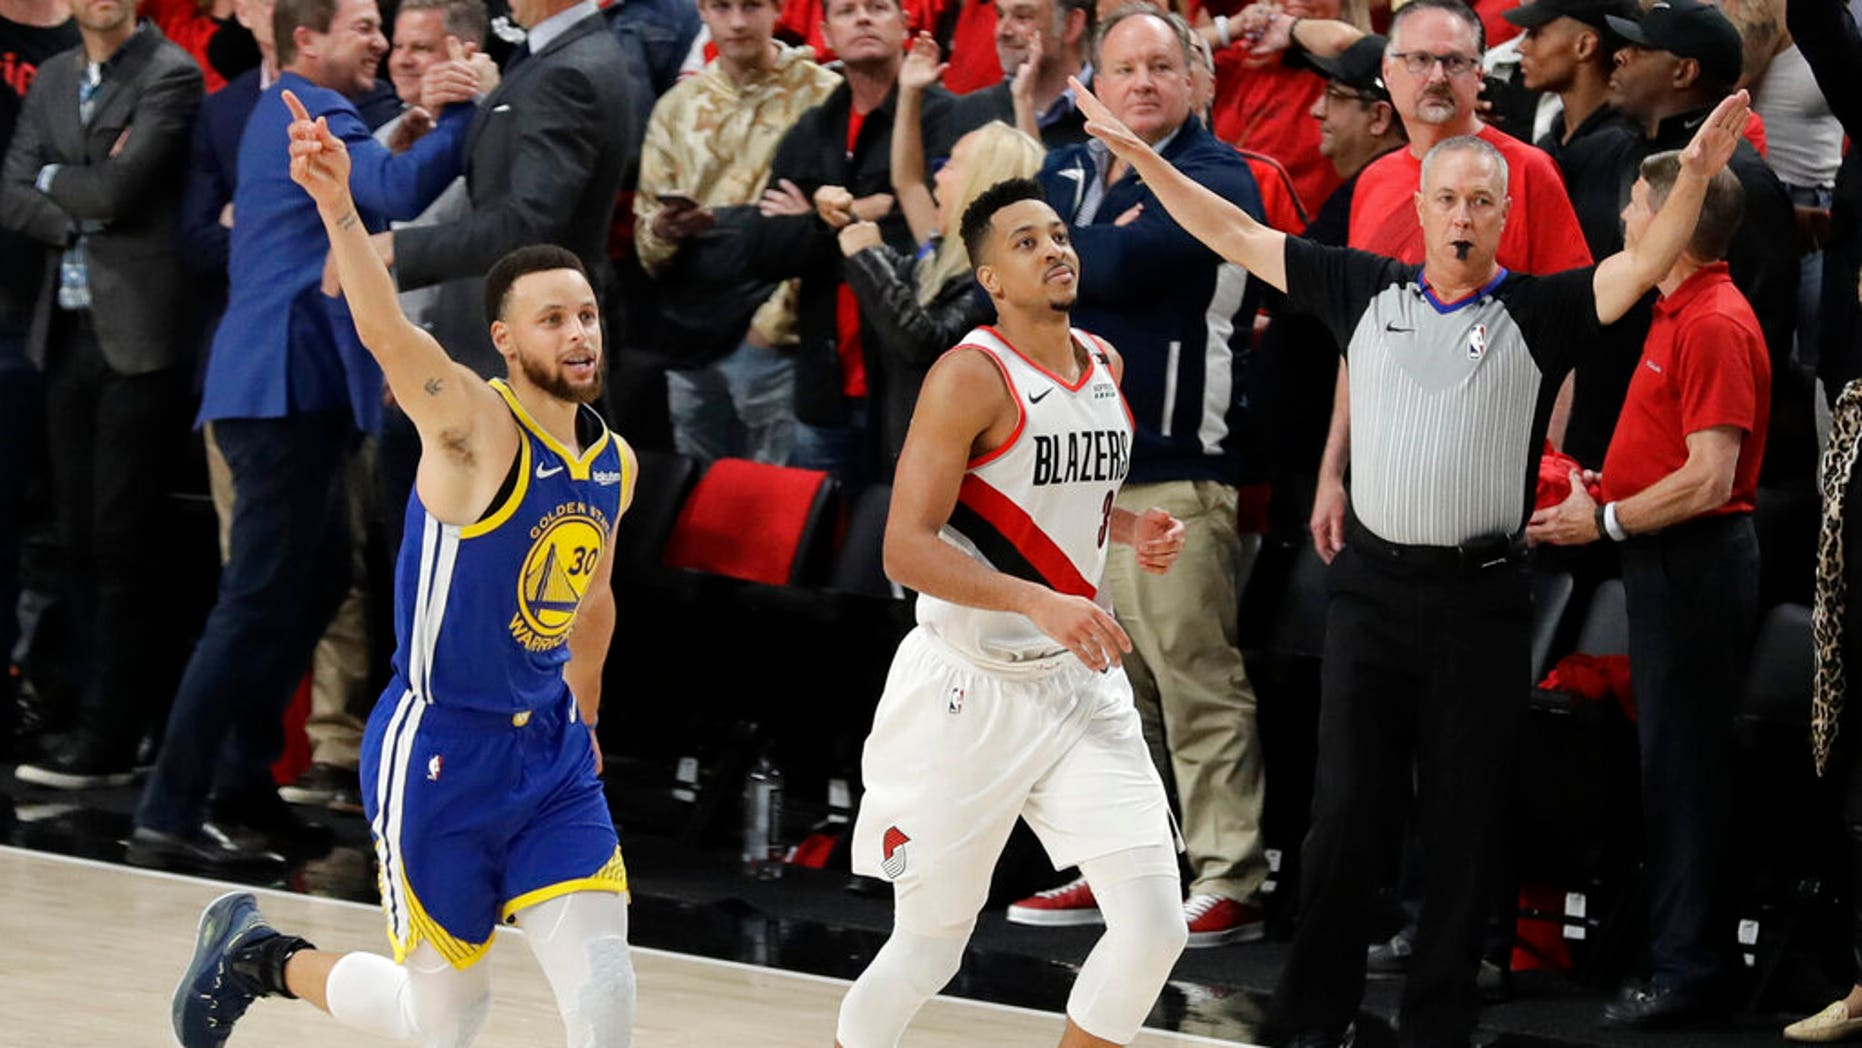 Golden State Warriors guard Stephen Curry, left, celebrates as he runs next to Portland Trail Blazers guard CJ McCollum, center, at the end of Game 4 of the NBA basketball playoffs Western Conference finals.